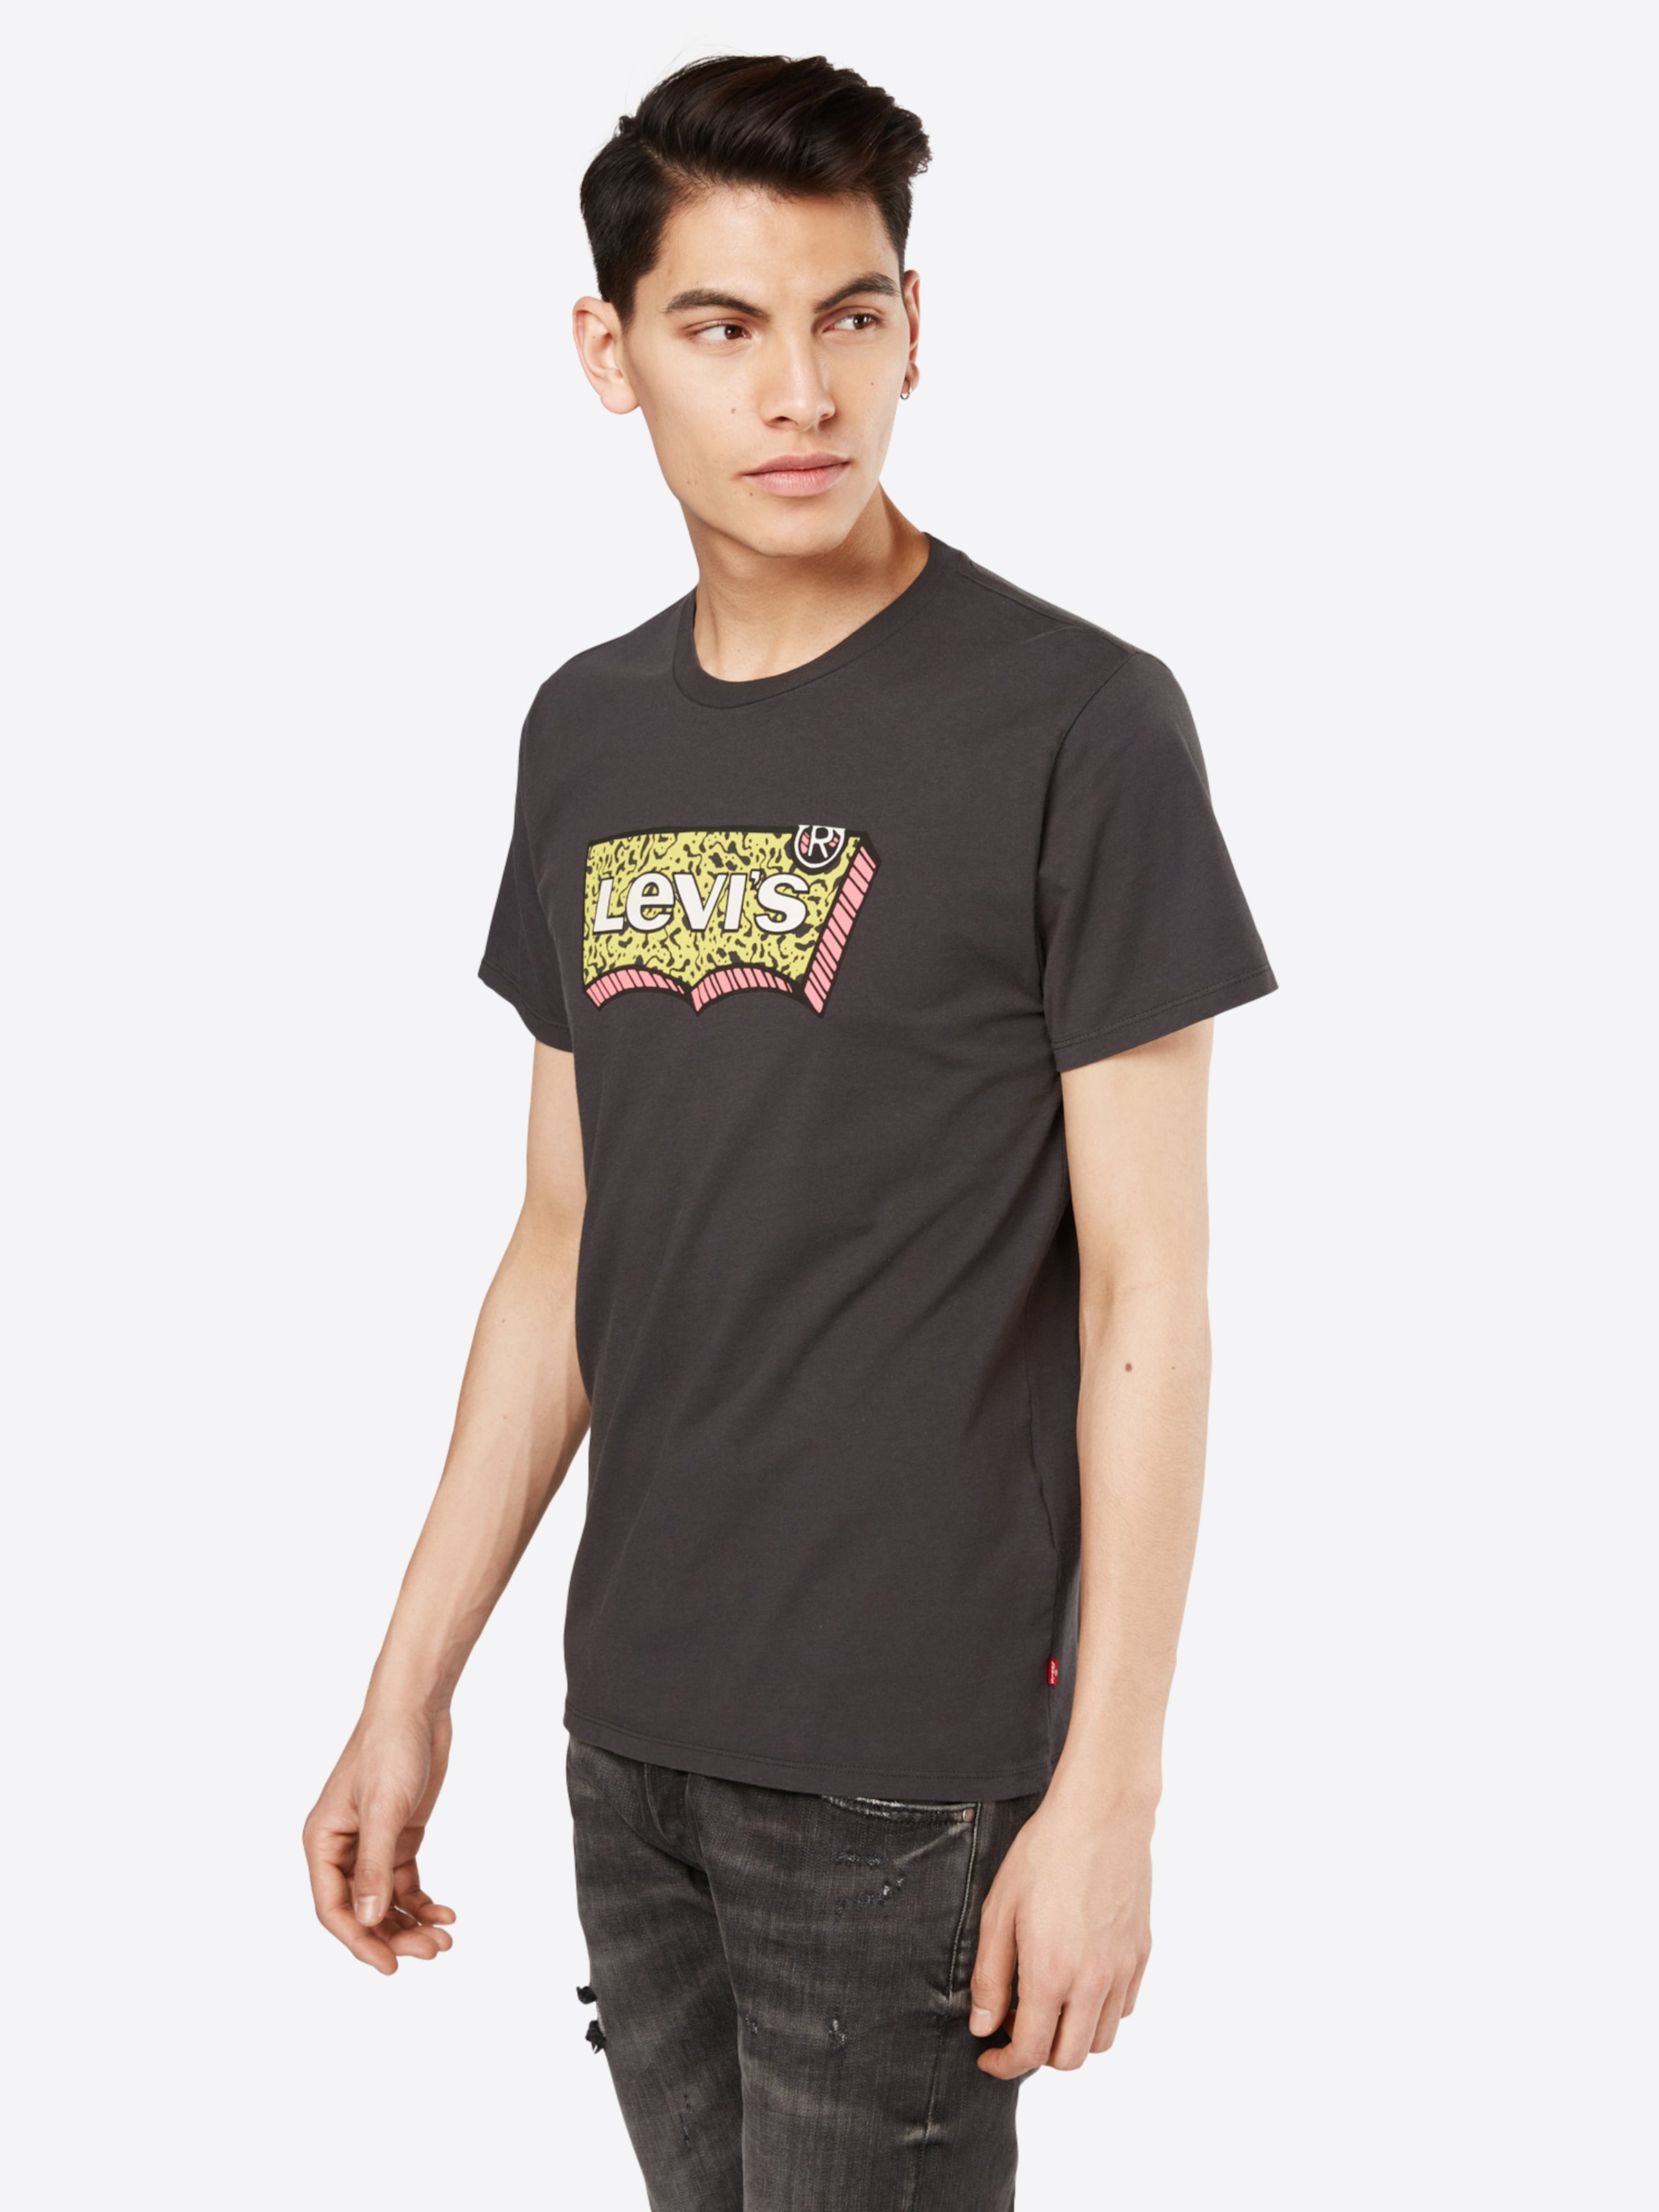 LEVI'S T-shirt 'HOUSEMARK GRAPHIC TEE' 100% Authentisch Online Original- 100% Original C5fCK2